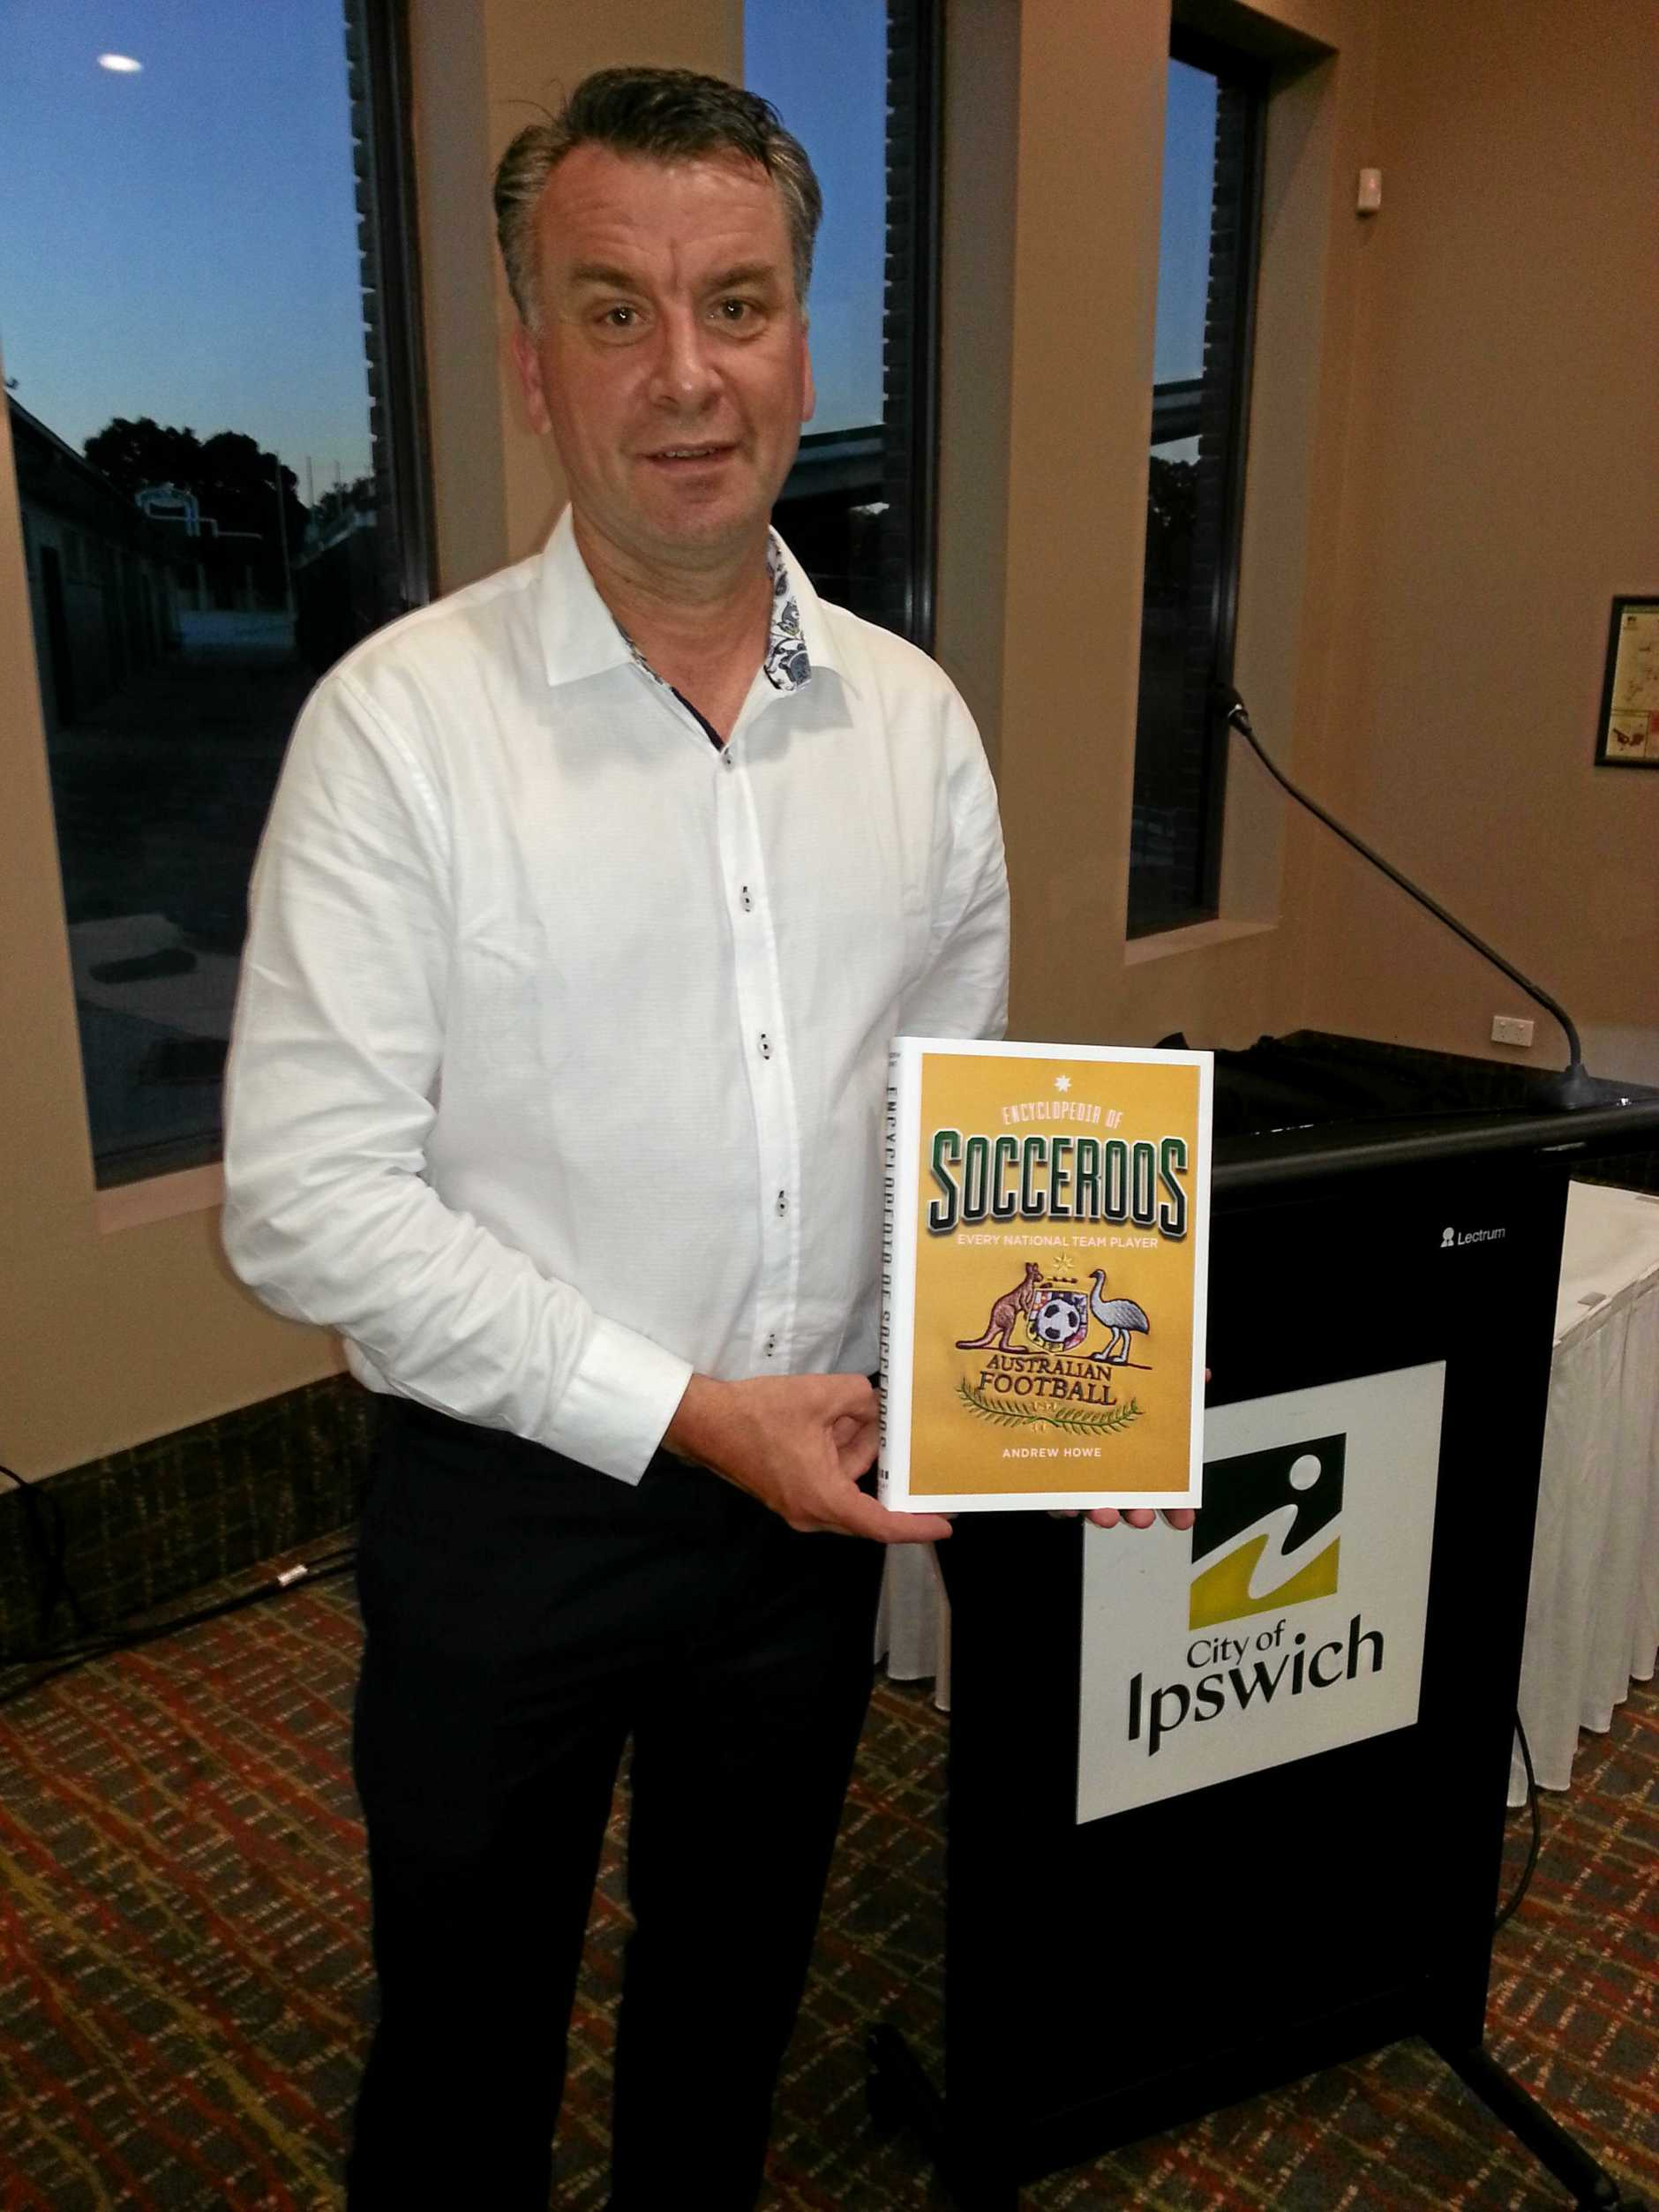 Encyclopedia of Socceroos author Andrew Howe at the launch of his book in Ipswich.